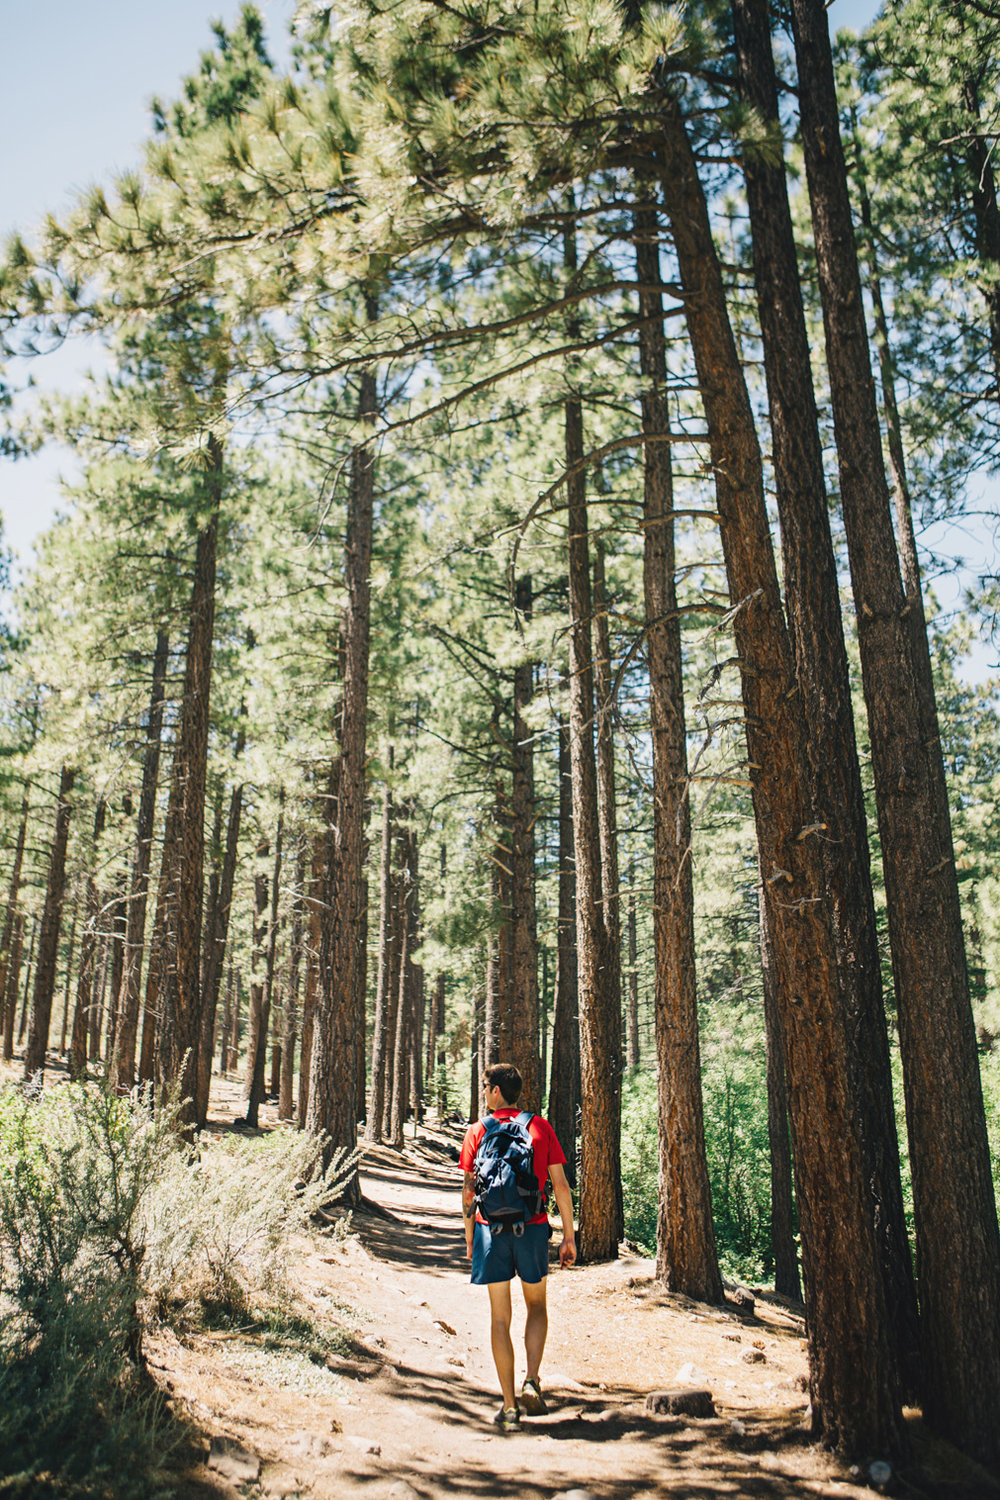 CindyGiovagnoli_Galena_Creek_Visitors_Center_hike_Reno_Tahoe_Nevada_outdoor_activities-003.jpg